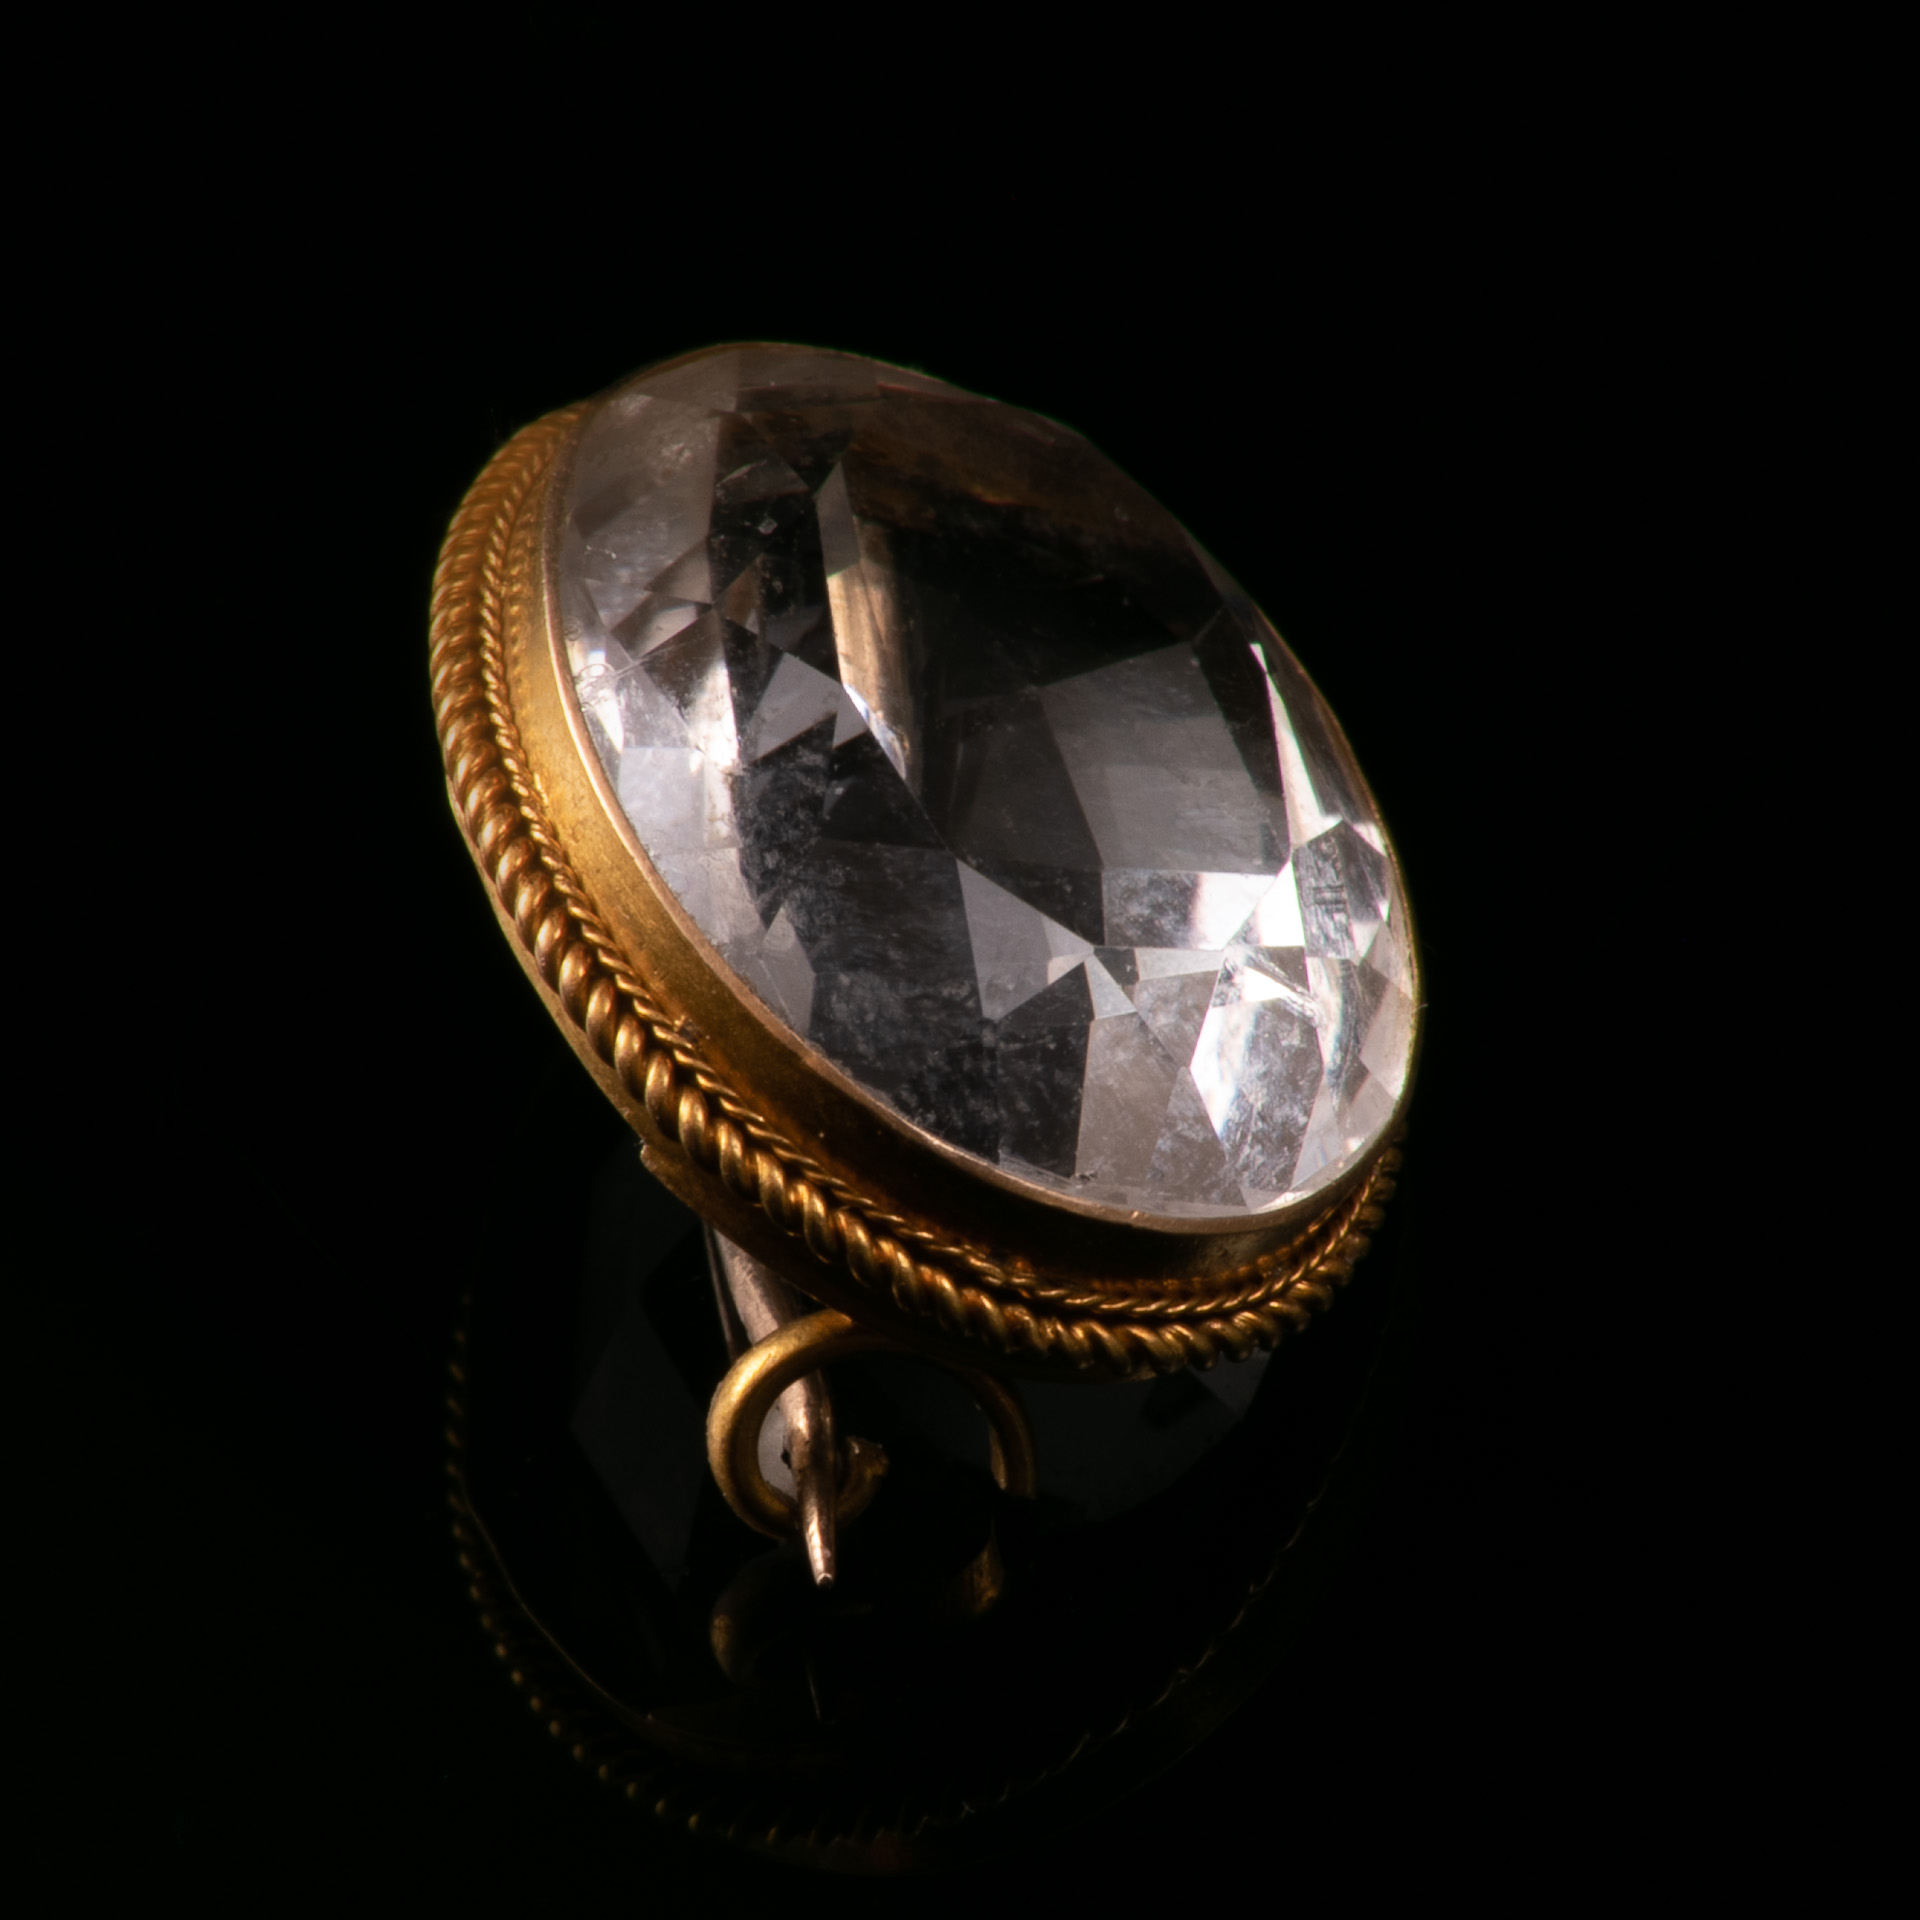 18ct Gold Victorian Faceted Rock Crystal Brooch - Image 3 of 5